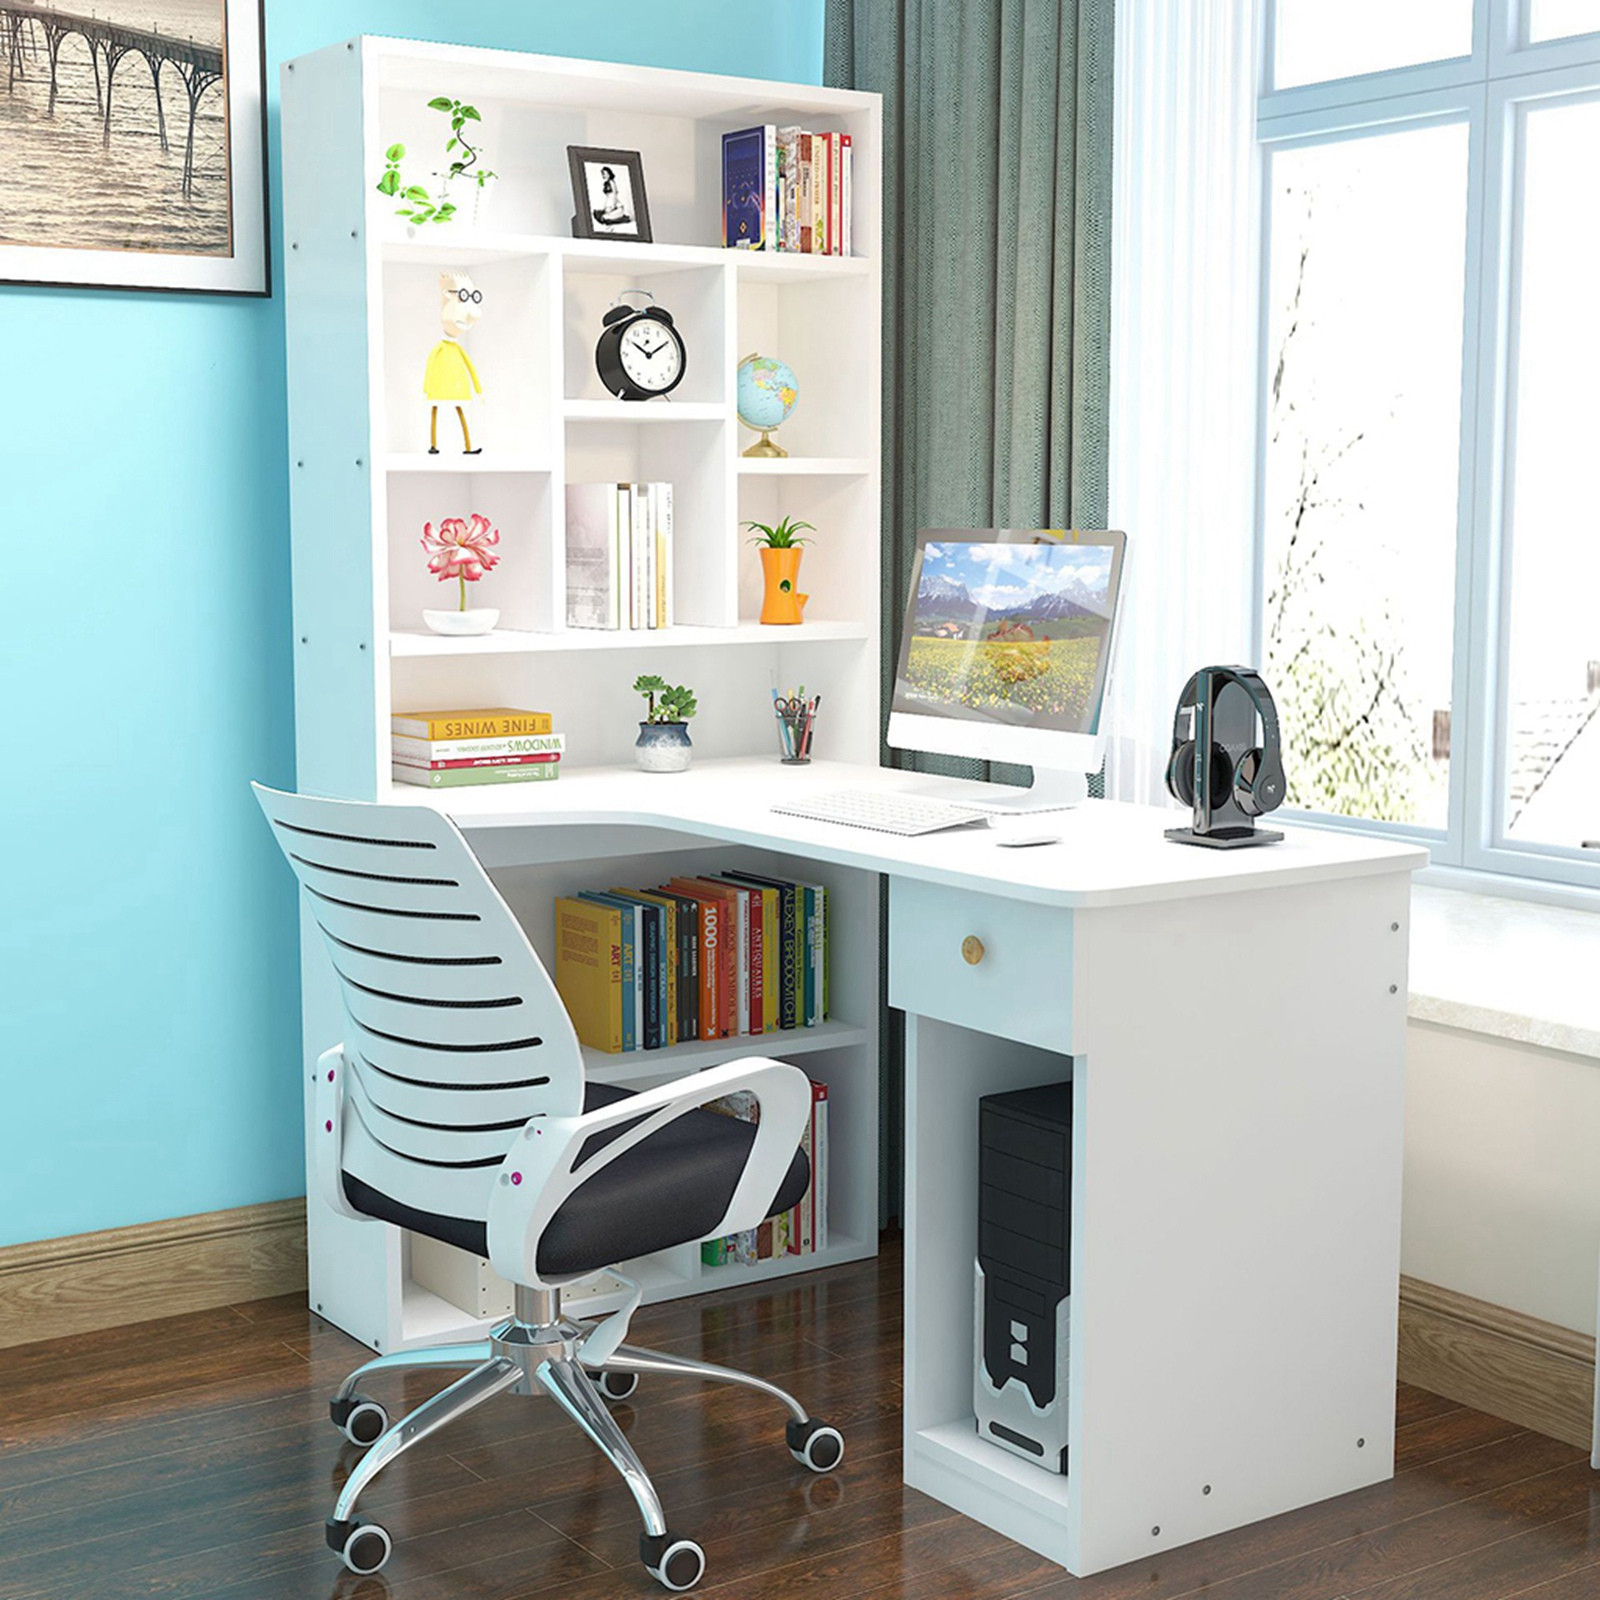 Computer Desk Desktop Desk Bookcase Table Combination Simpleness Furniture Student Writing Desk Подставка Под Ноутбук